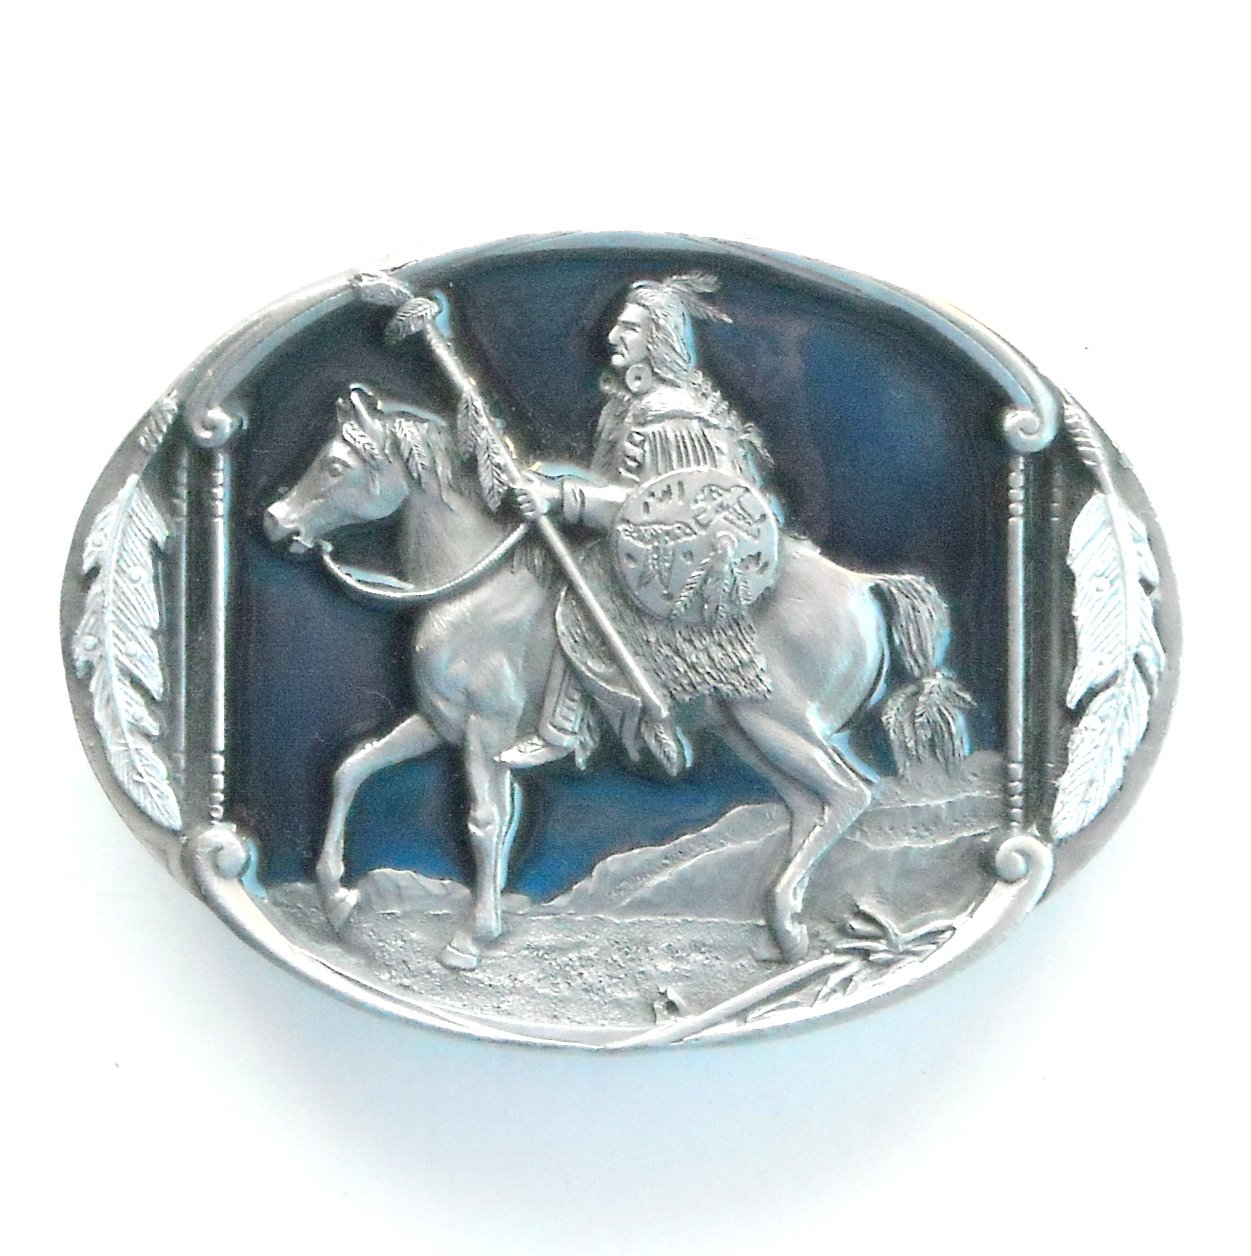 Native American Great Chief Riding 3D Siskiyou Pewter Pewter Belt Buckle